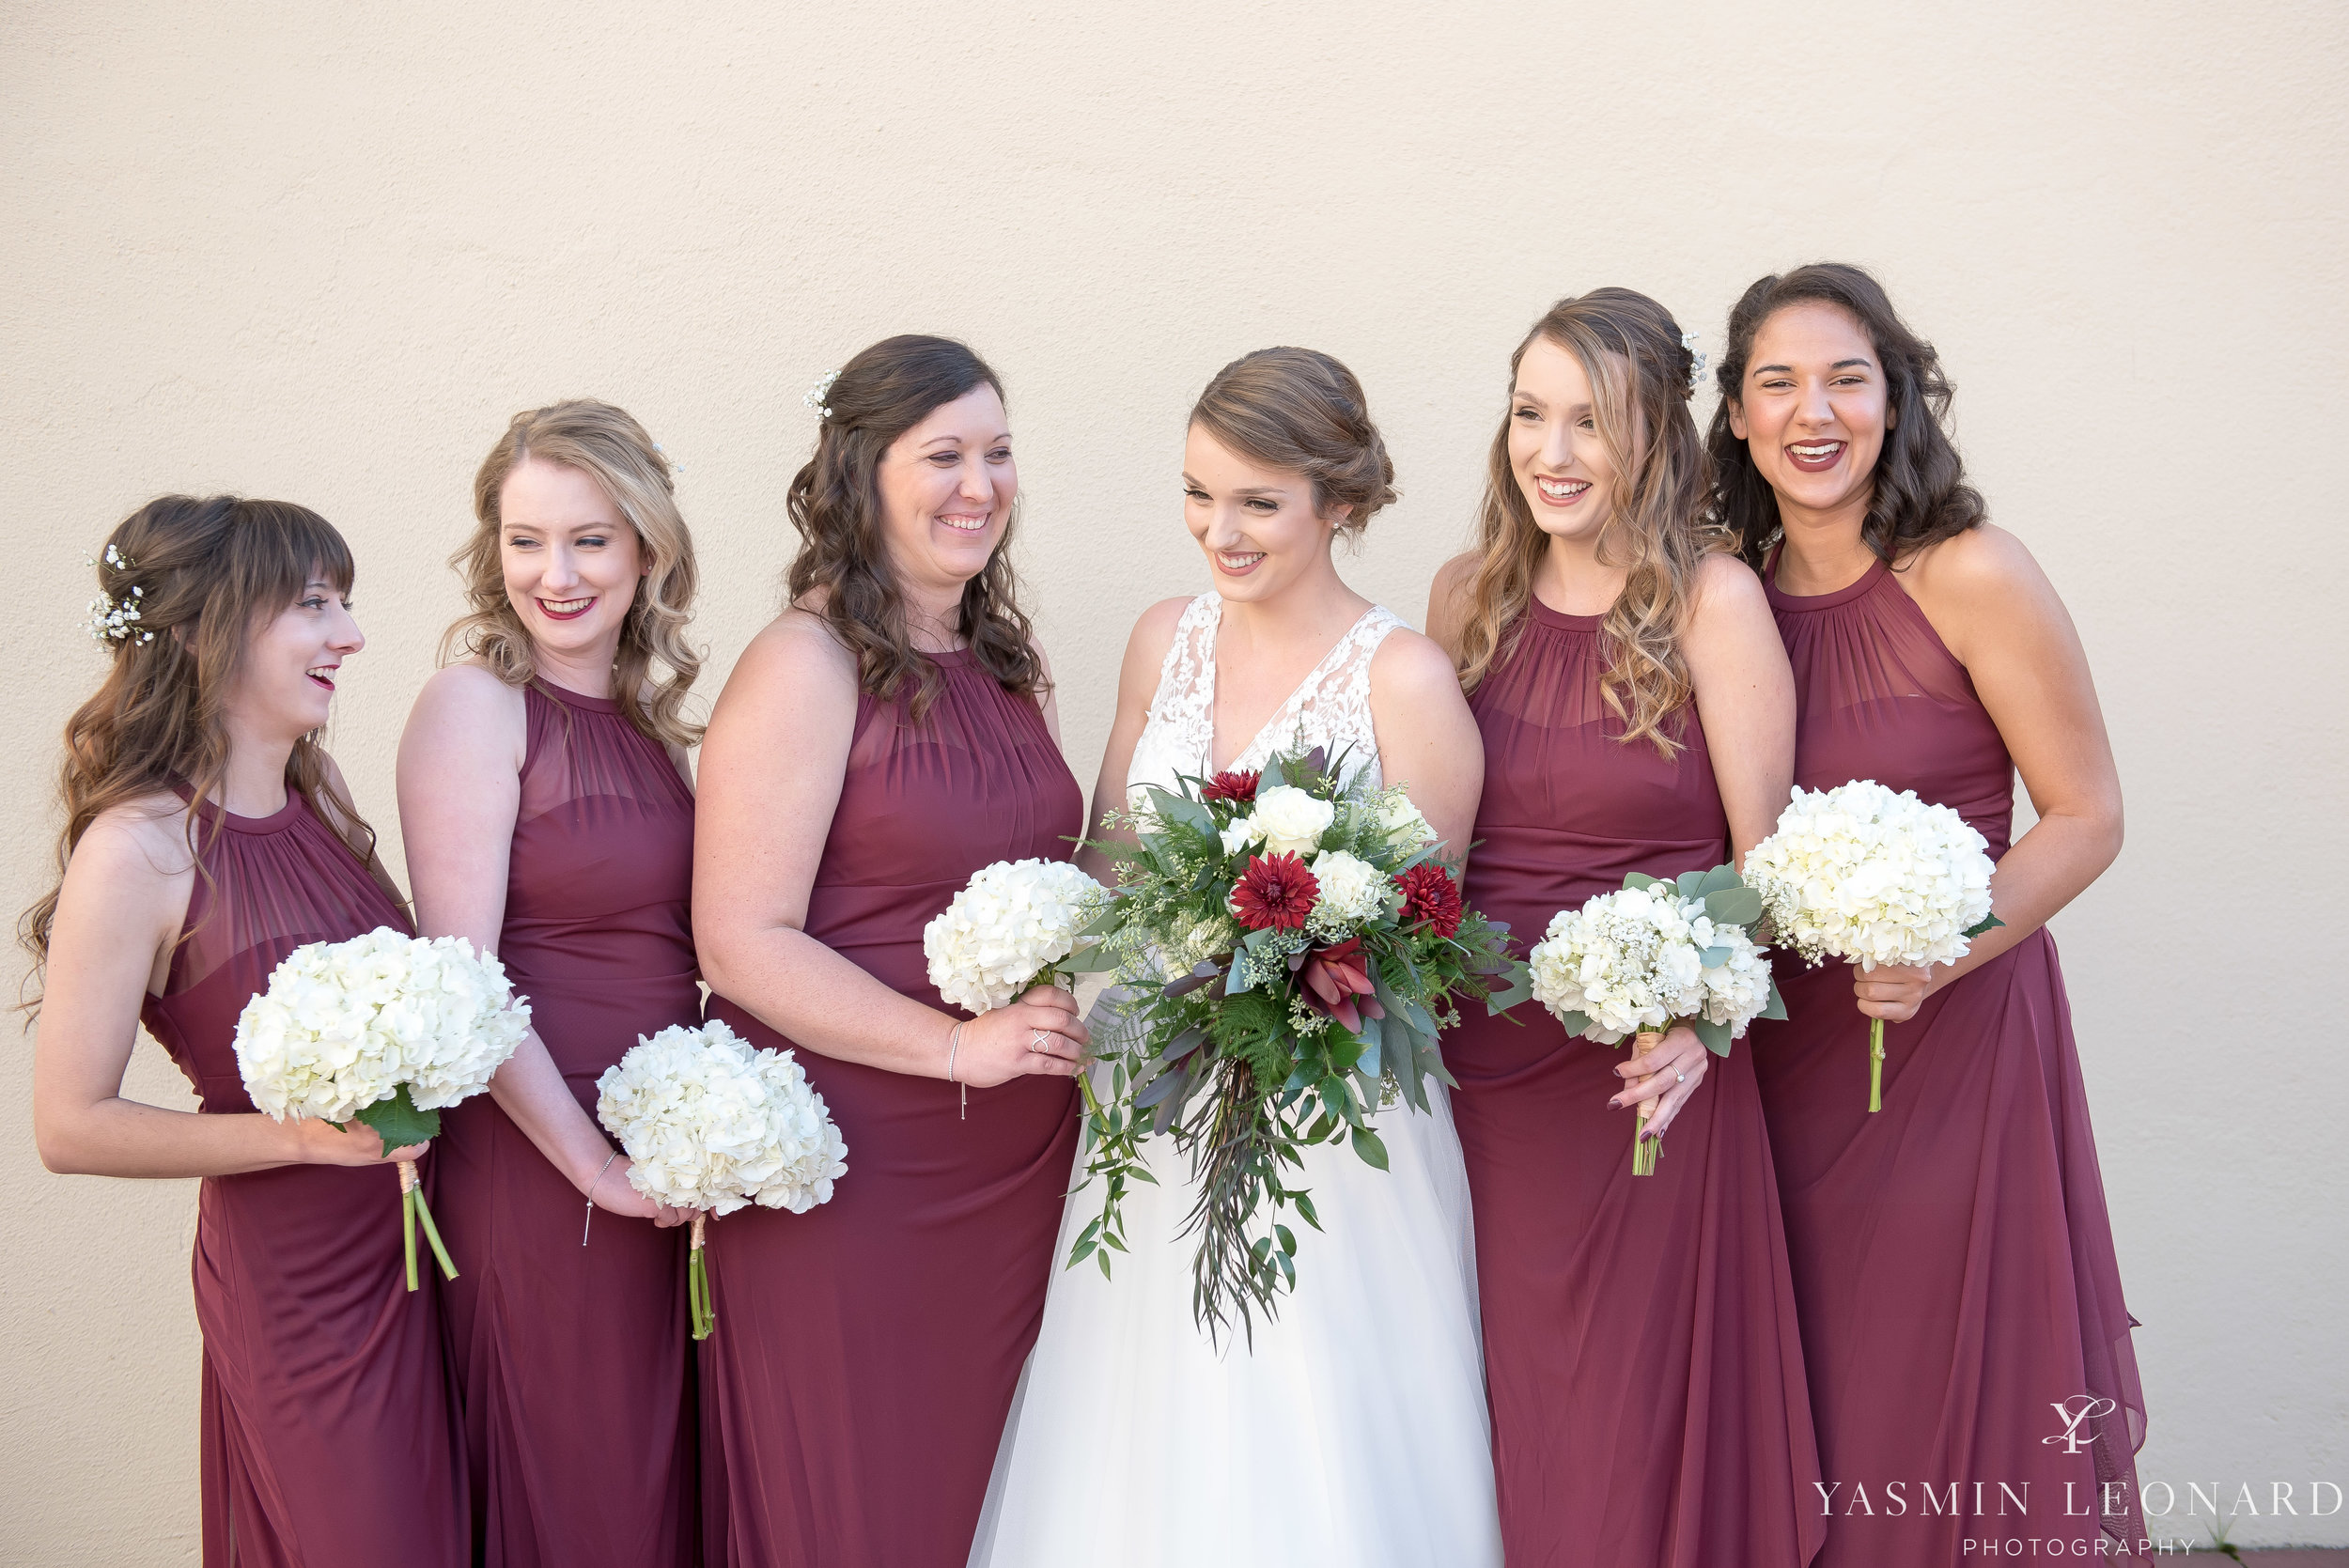 Villa Del Amour - High Point Weddings - NC Weddings - NC Photographer - NC Wedding Photographer - Yasmin Leonard Photography-26.jpg